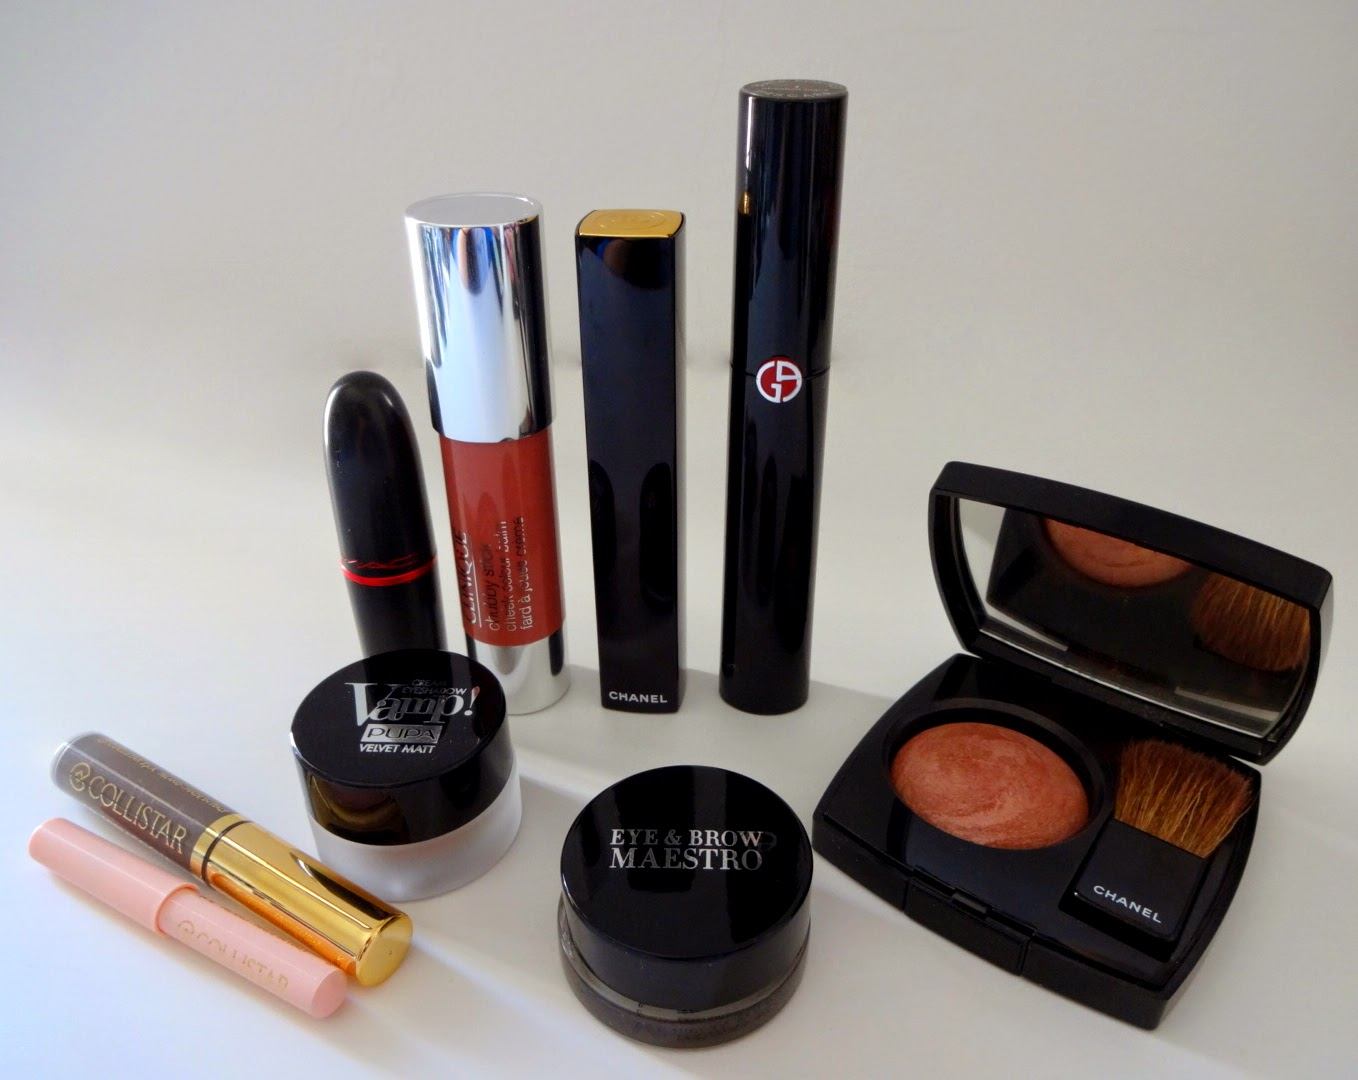 make up preferiti ottobre 2014, chanel blush, armani eye & brow maestro, mascara armani ecstasy, pupa vamp eye shadow matt, mac viva glam 2, collistar gel sopracciglia, chanel rouge allure gloss